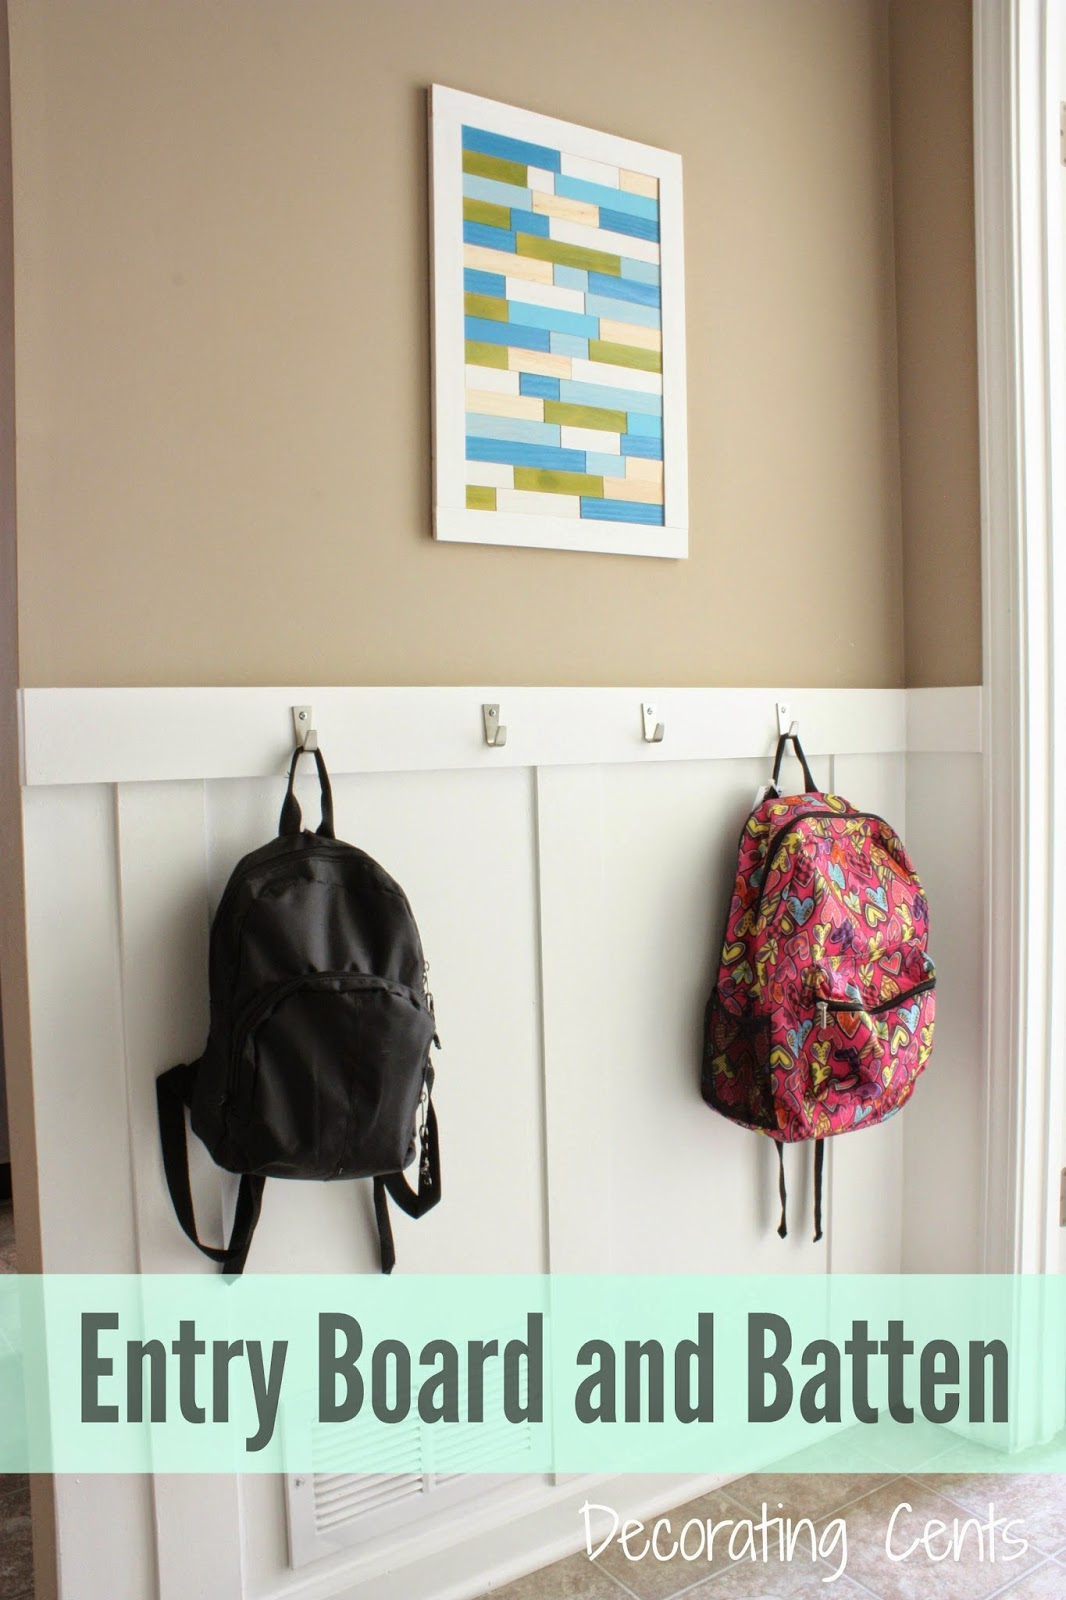 Decorating Cents: Board and Batten in the Back Entry